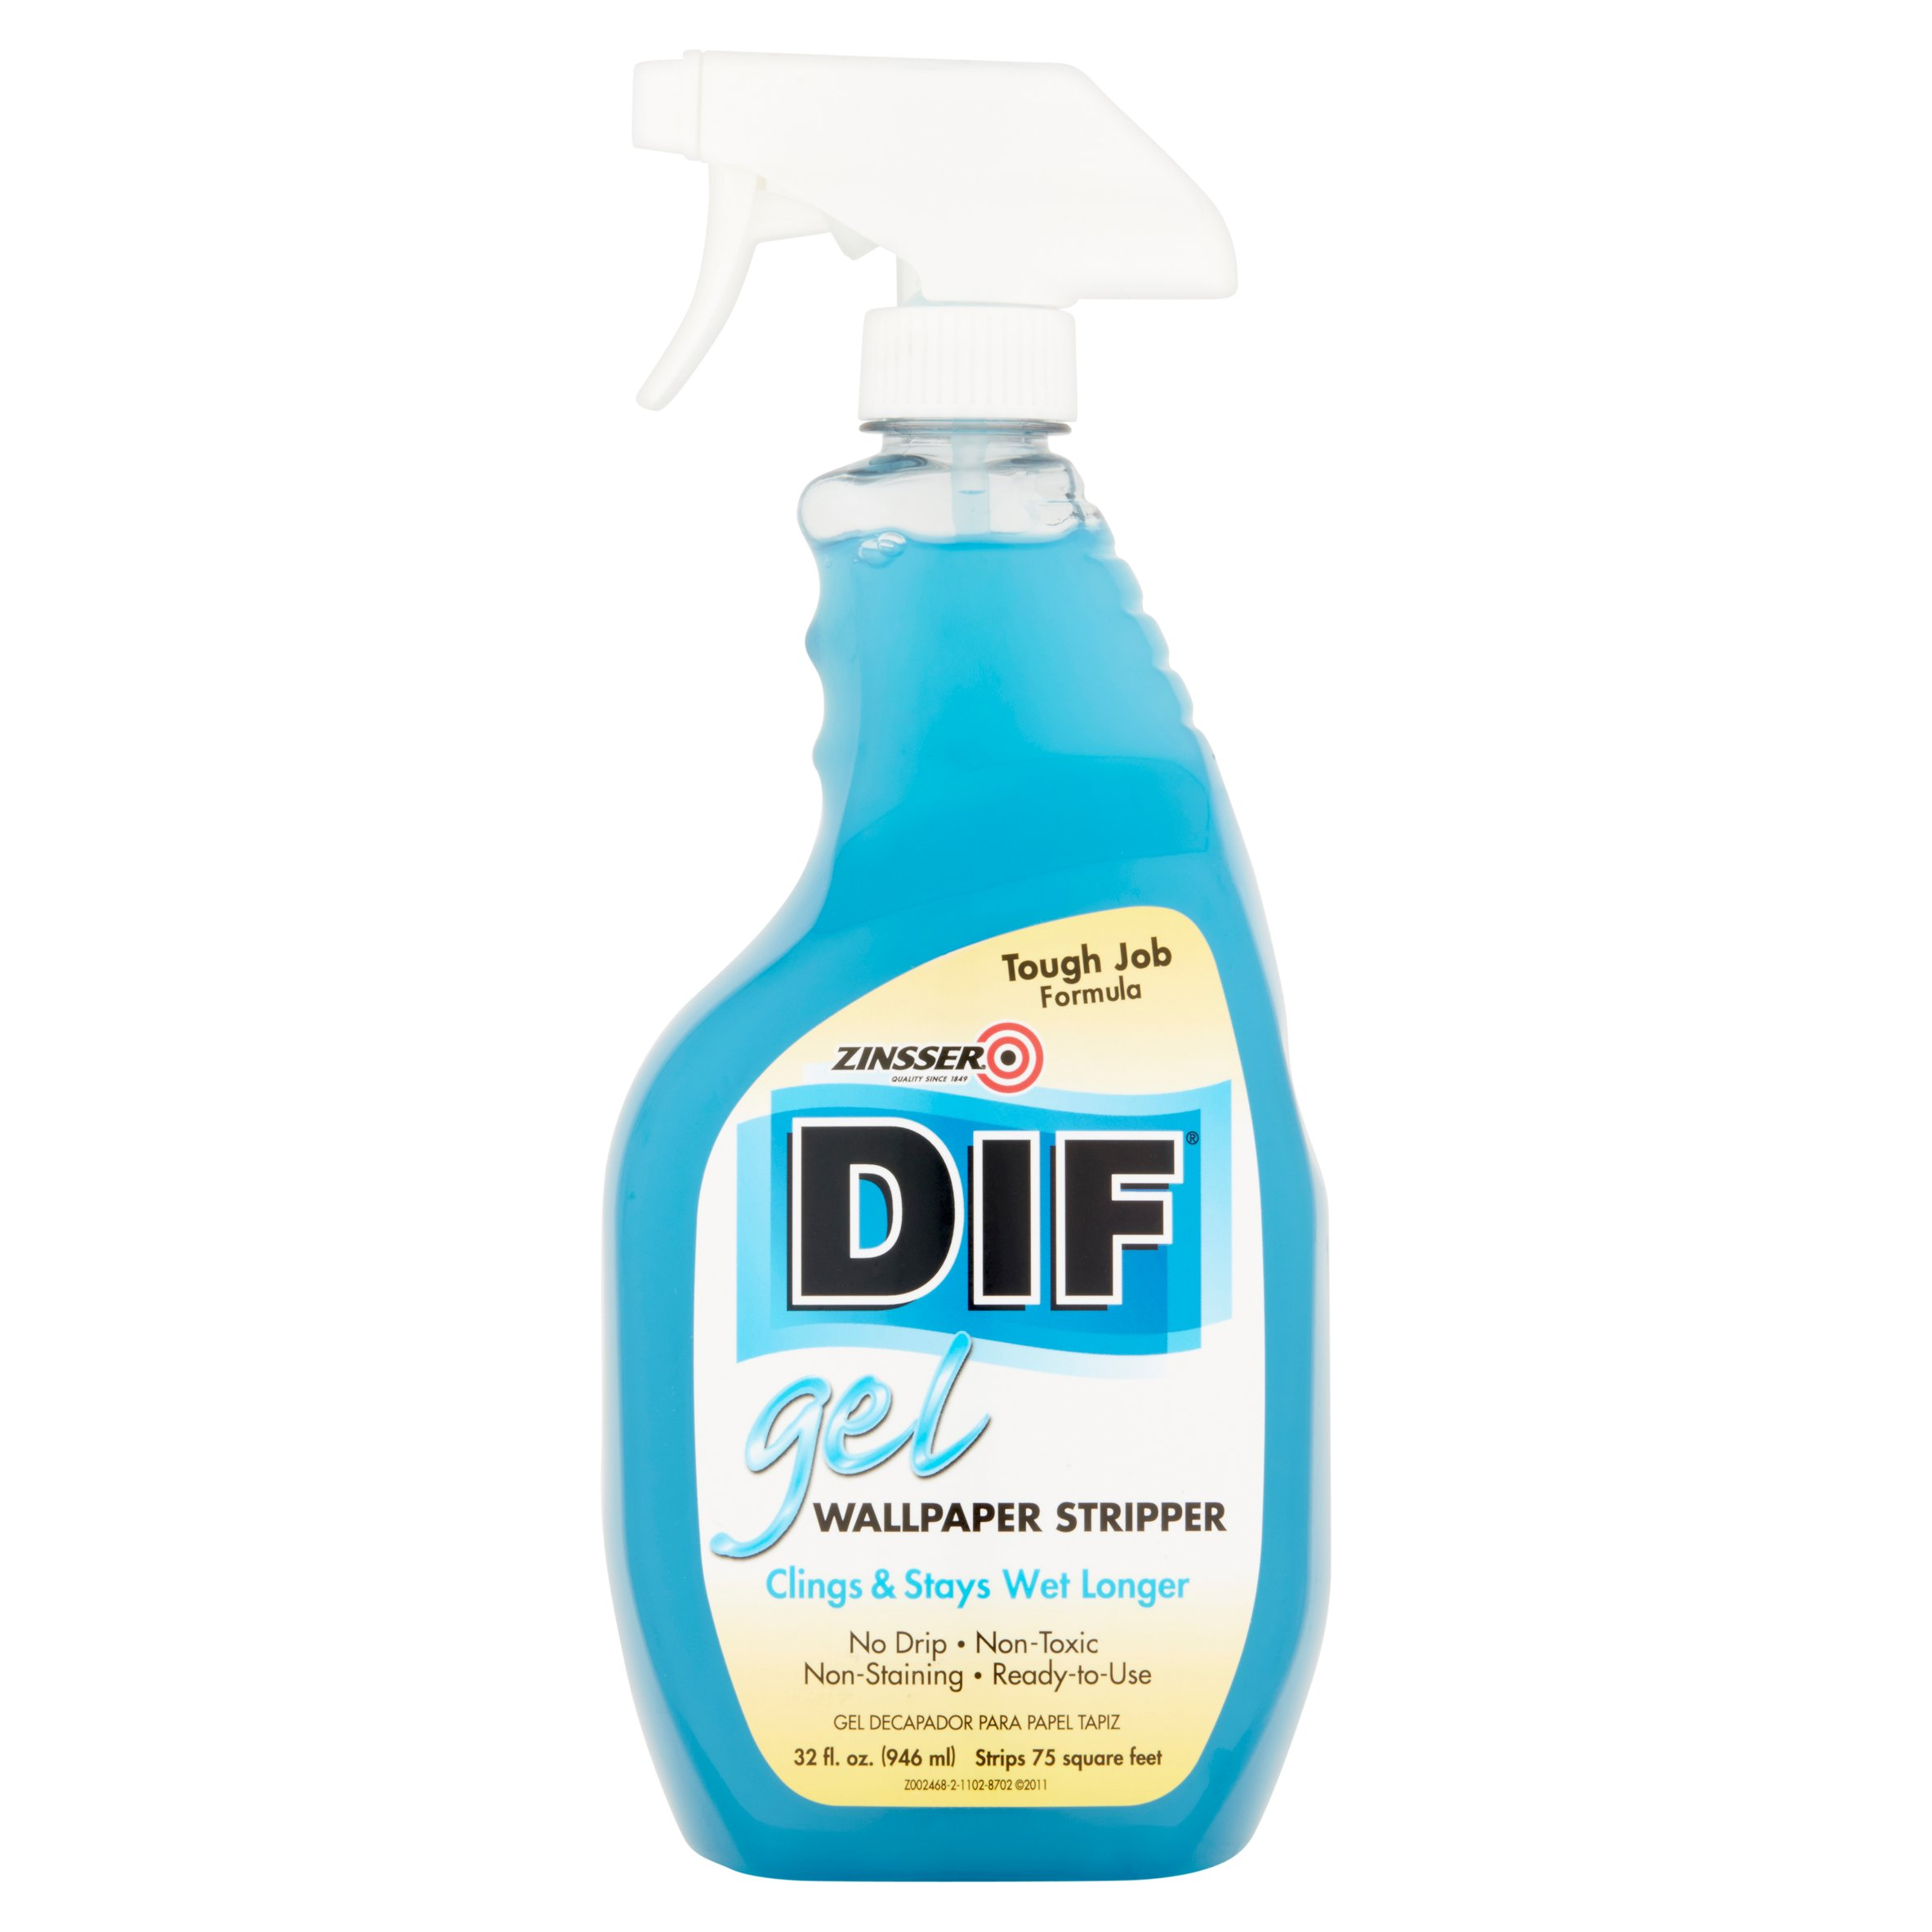 Zinsser DIF Gel Wallpaper Stripper, 32 fl oz